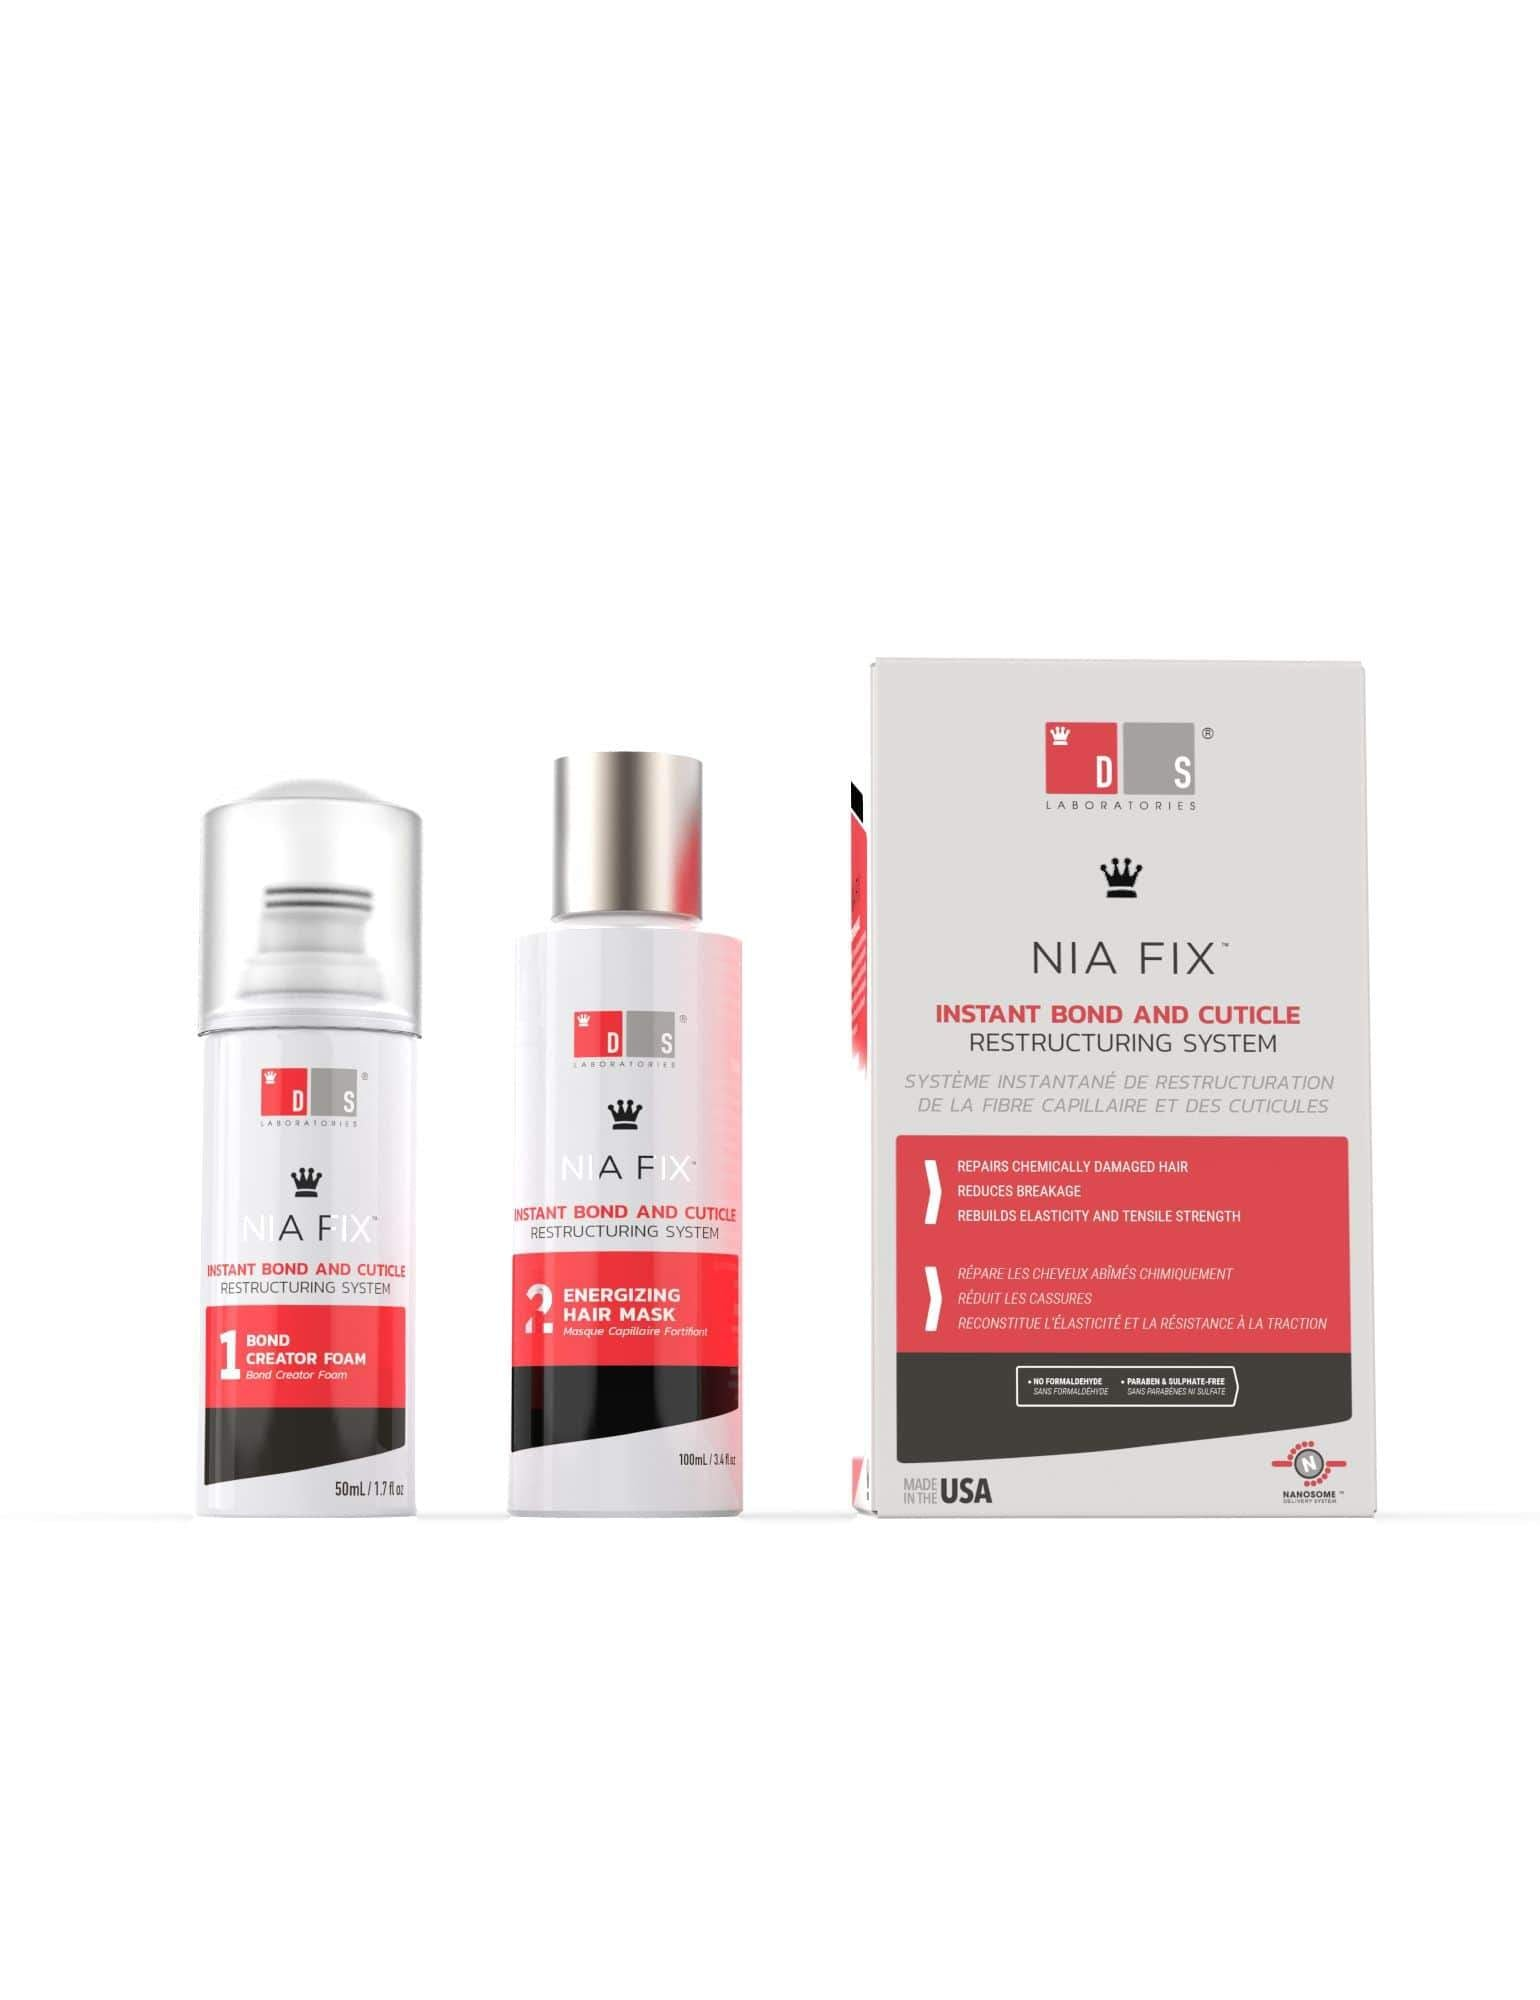 Nia Fix | Instant Bond and Cuticle Restructuring System